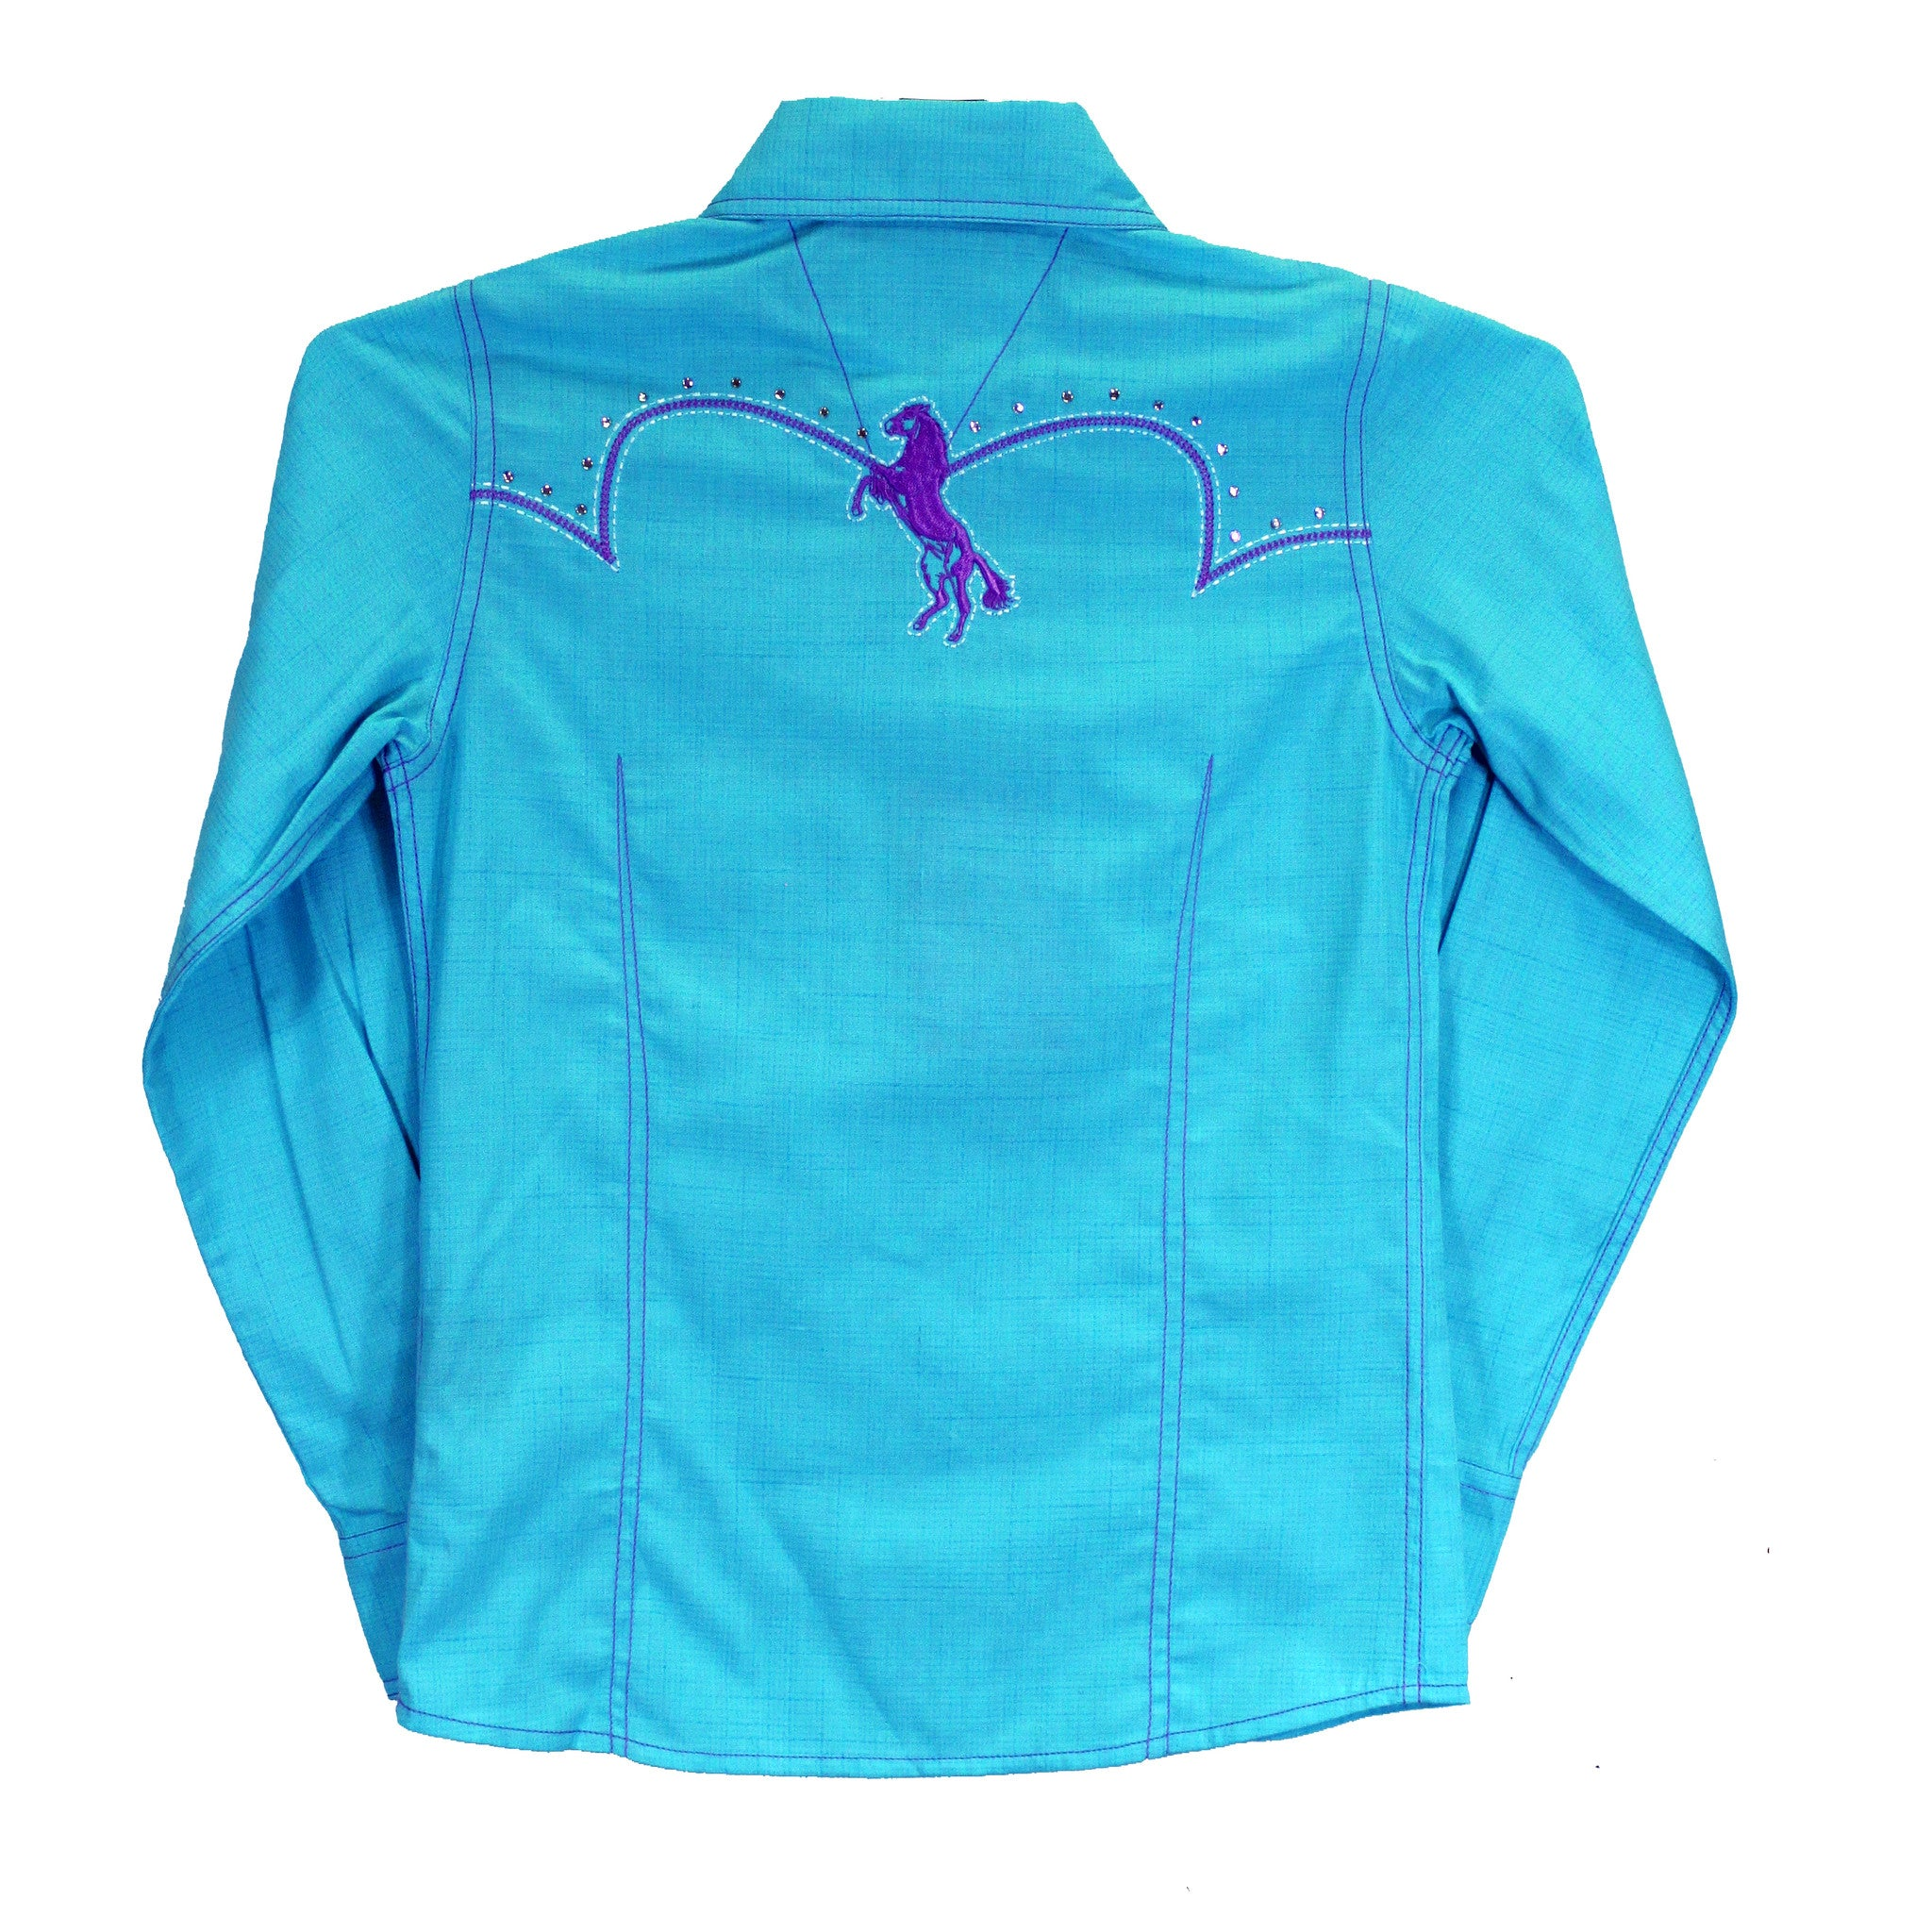 d4672aa1d602b5 Cowgirl Hardware Infant Toddler Turquoise/Purple Show Shirt 825322-I2 SALE.  Cowgirl ...